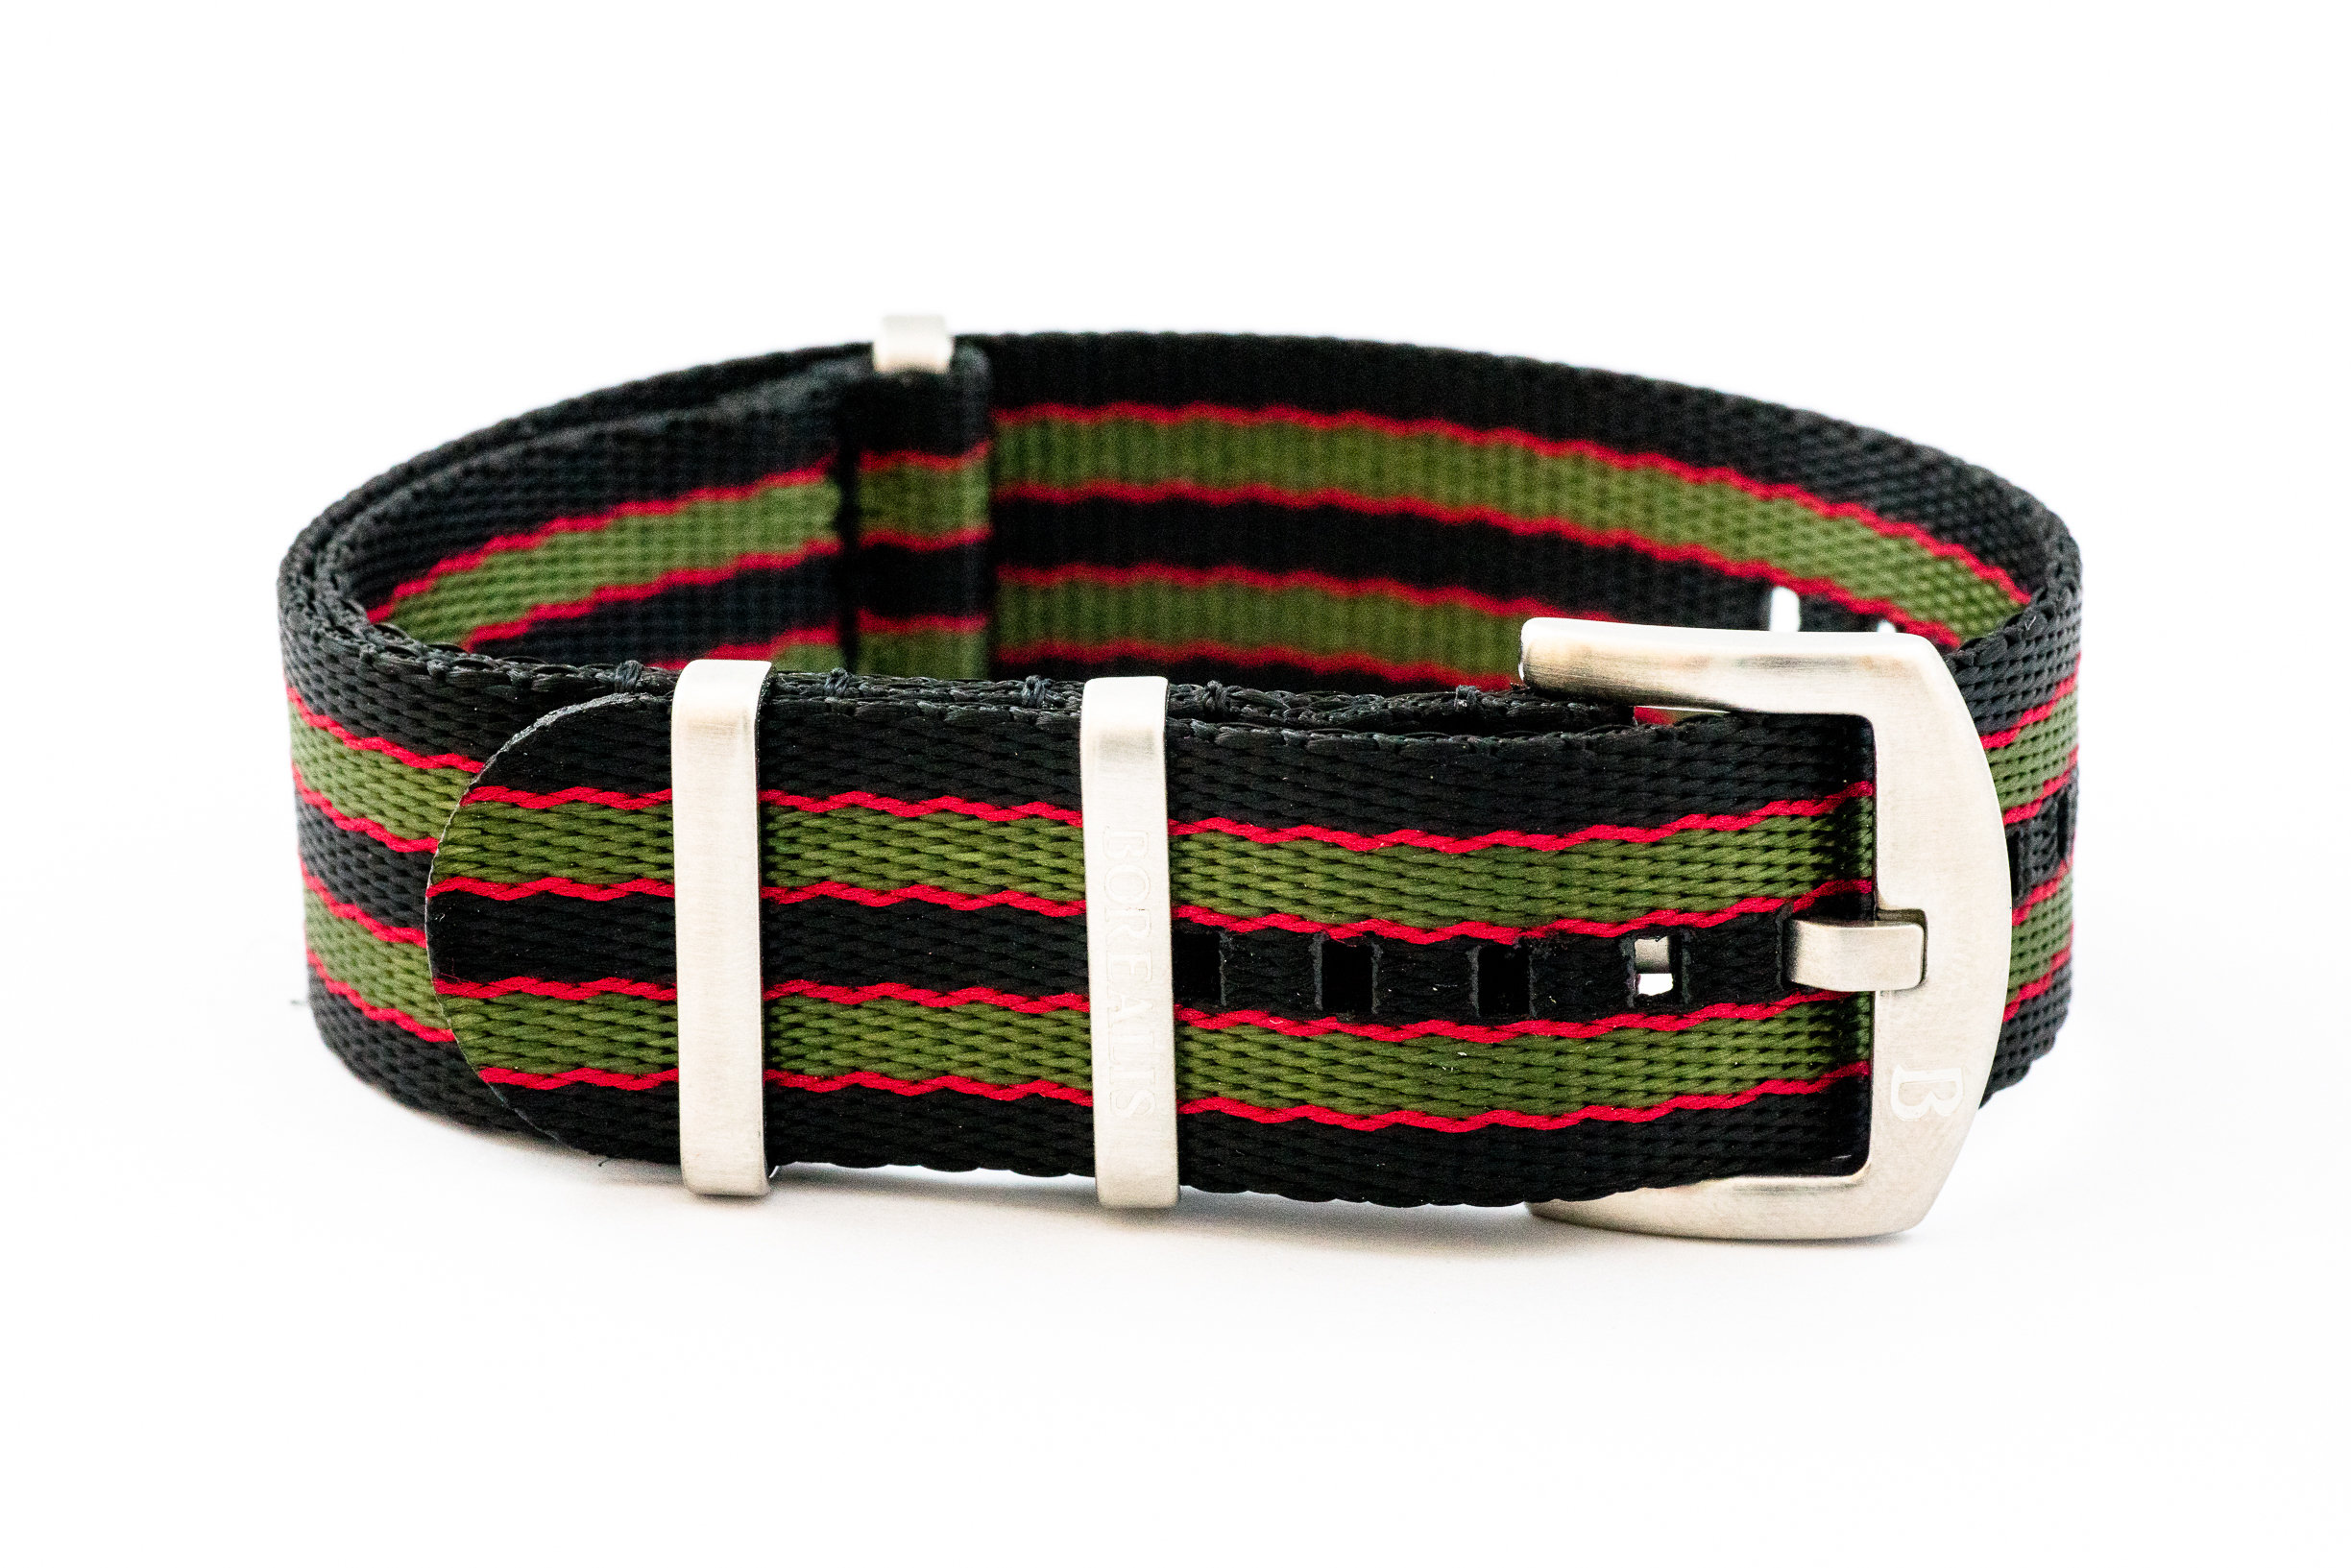 Premium Nato style seatbelt nylon strap 20mm size three tone black red green